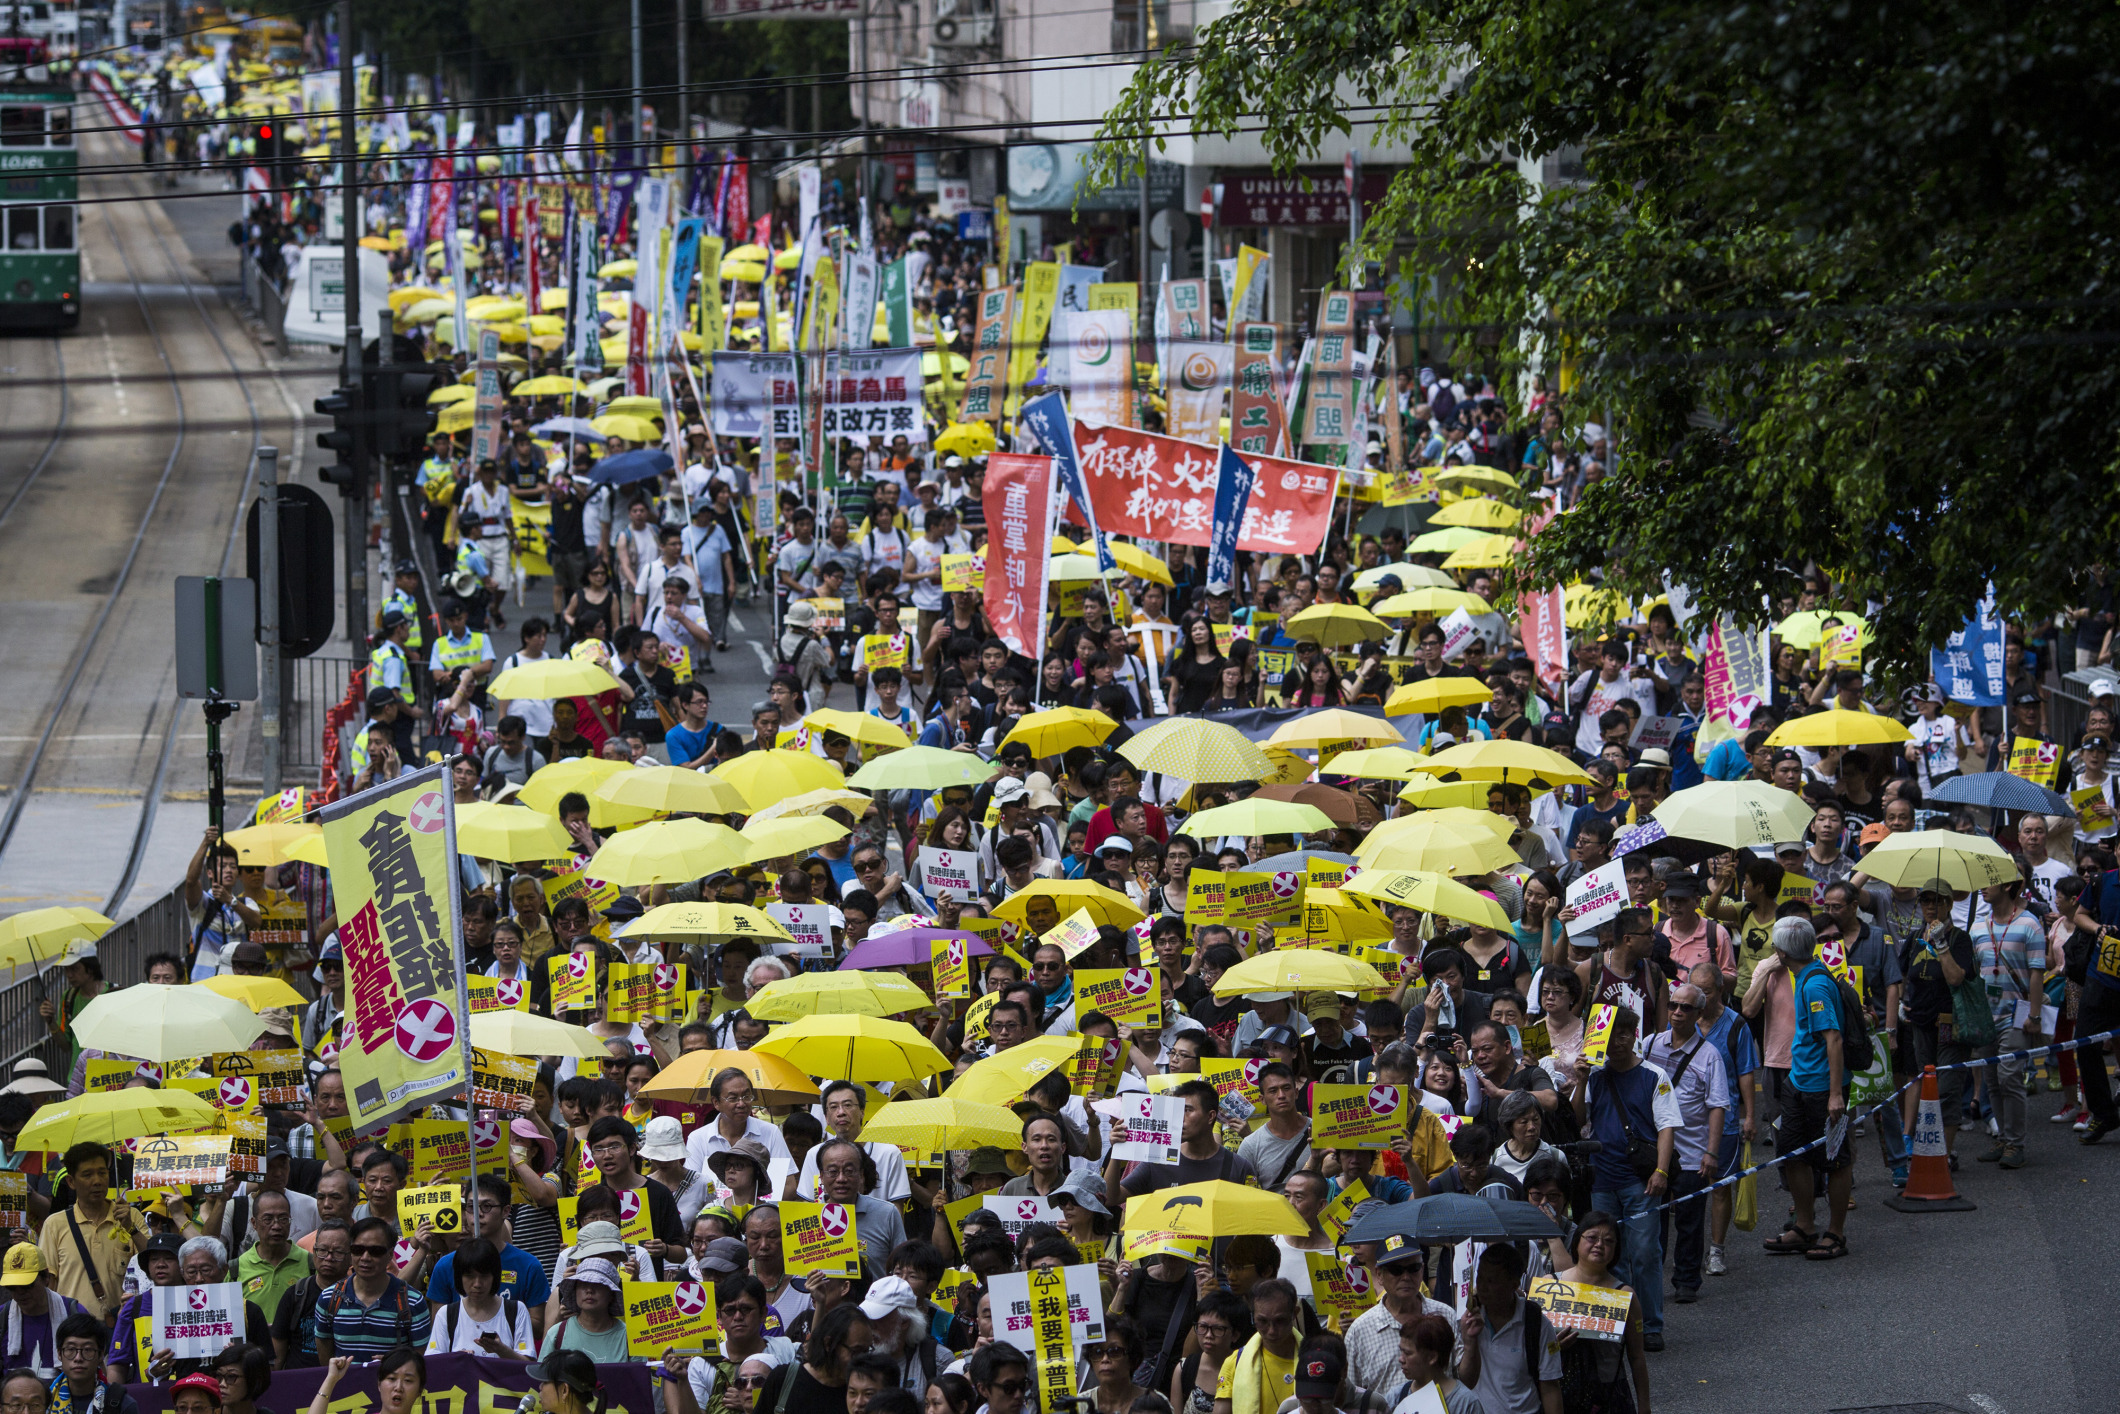 Protesters carrying yellow umbrellas and signs march during a pro-democracy rally in Hong Kong, China, on Sunday, June 14, 2015.